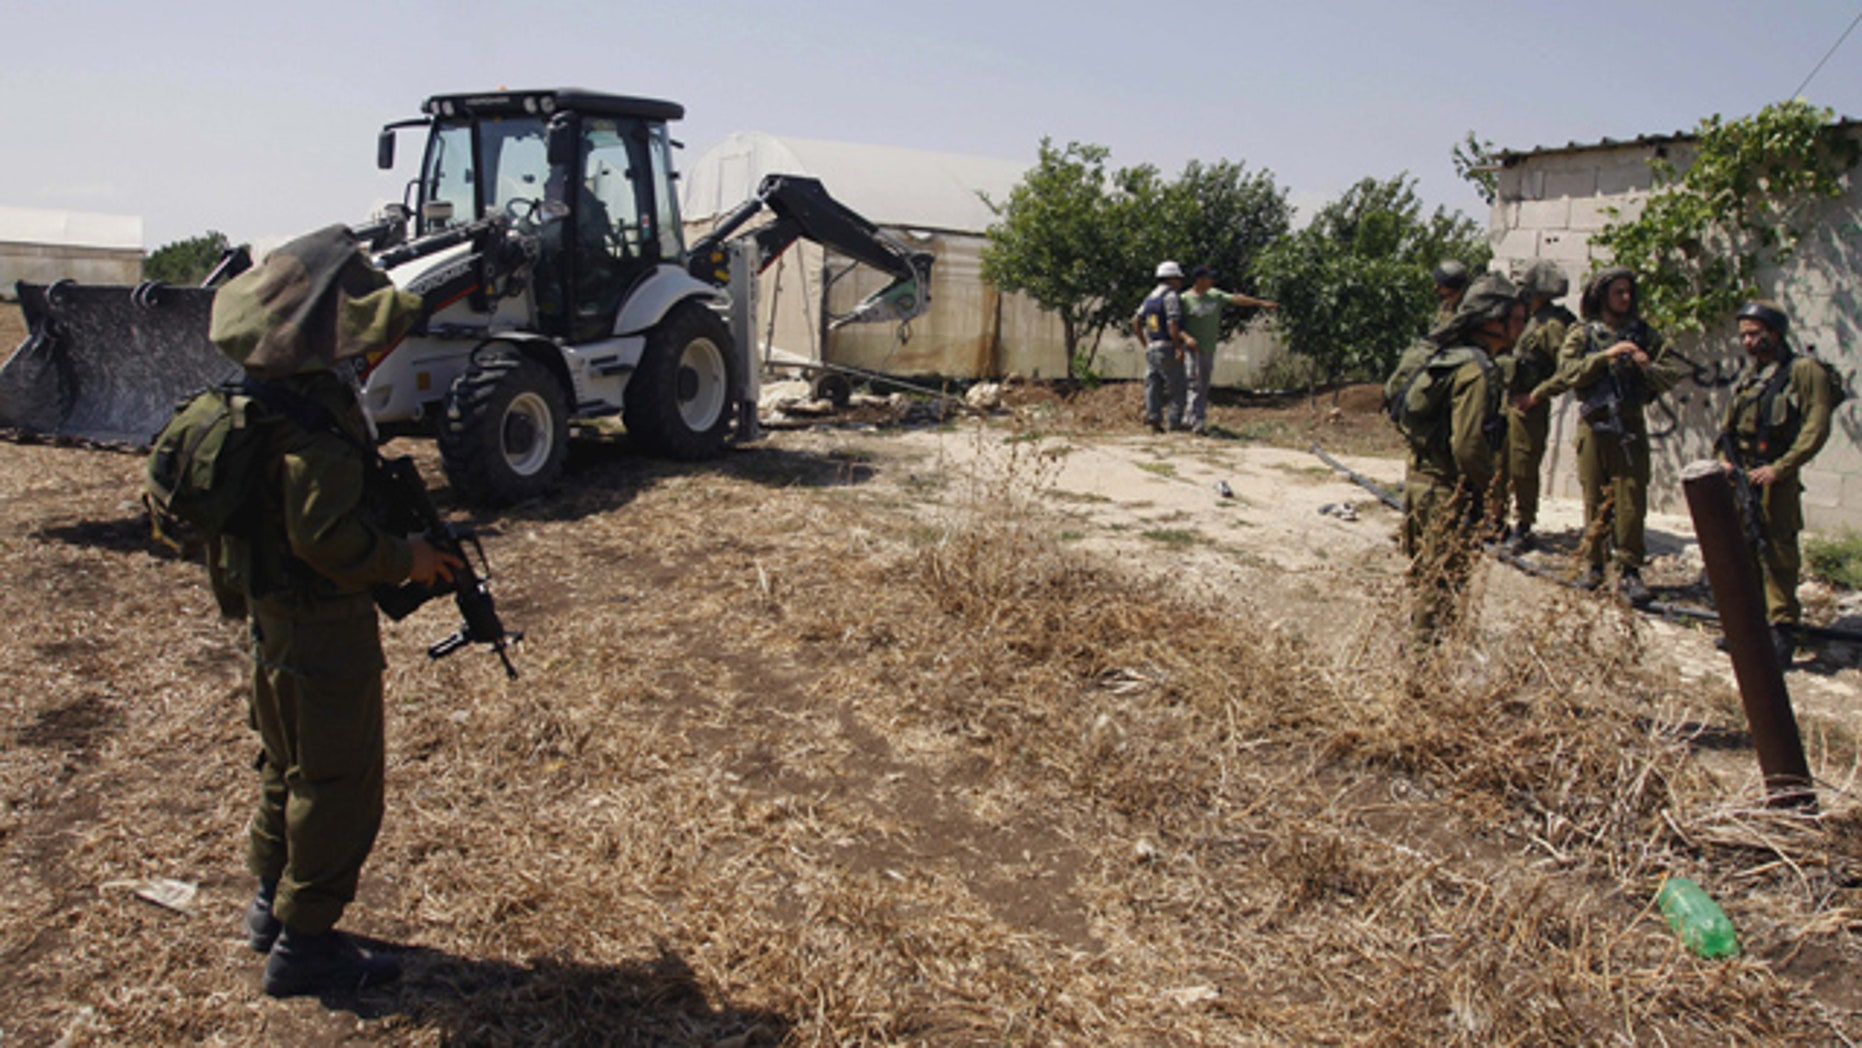 May 29: Israeli soldiers guard as a military tractor destroy wells used by Palestinian farmers for agricultural irrigation near the West Bank village of Kfar Dan west of Jenin.